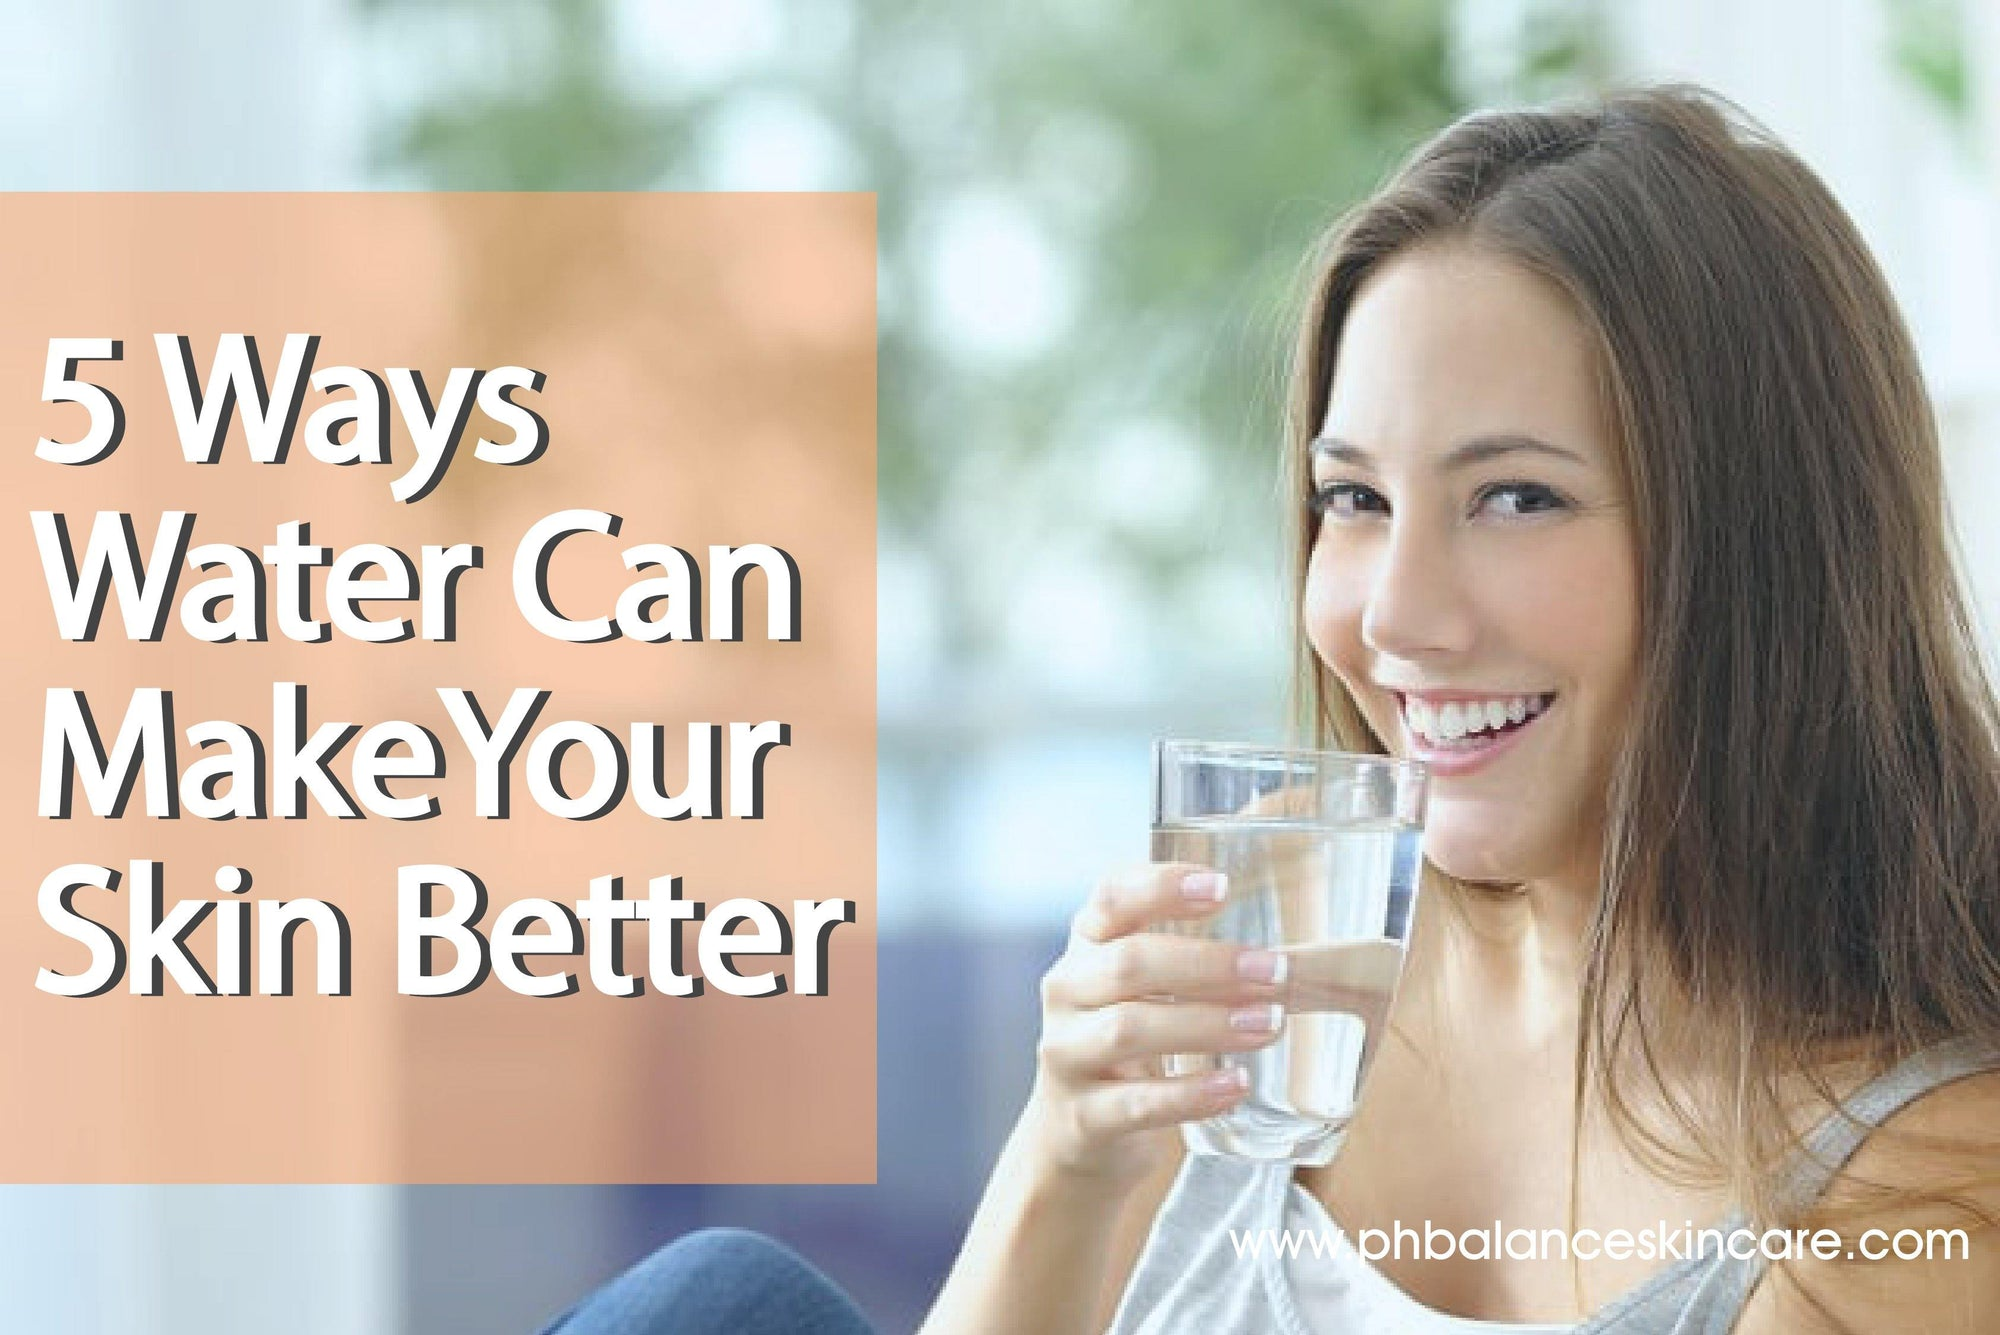 5 Ways Water Can Make Your Skin Better  - pH Balance Skincare